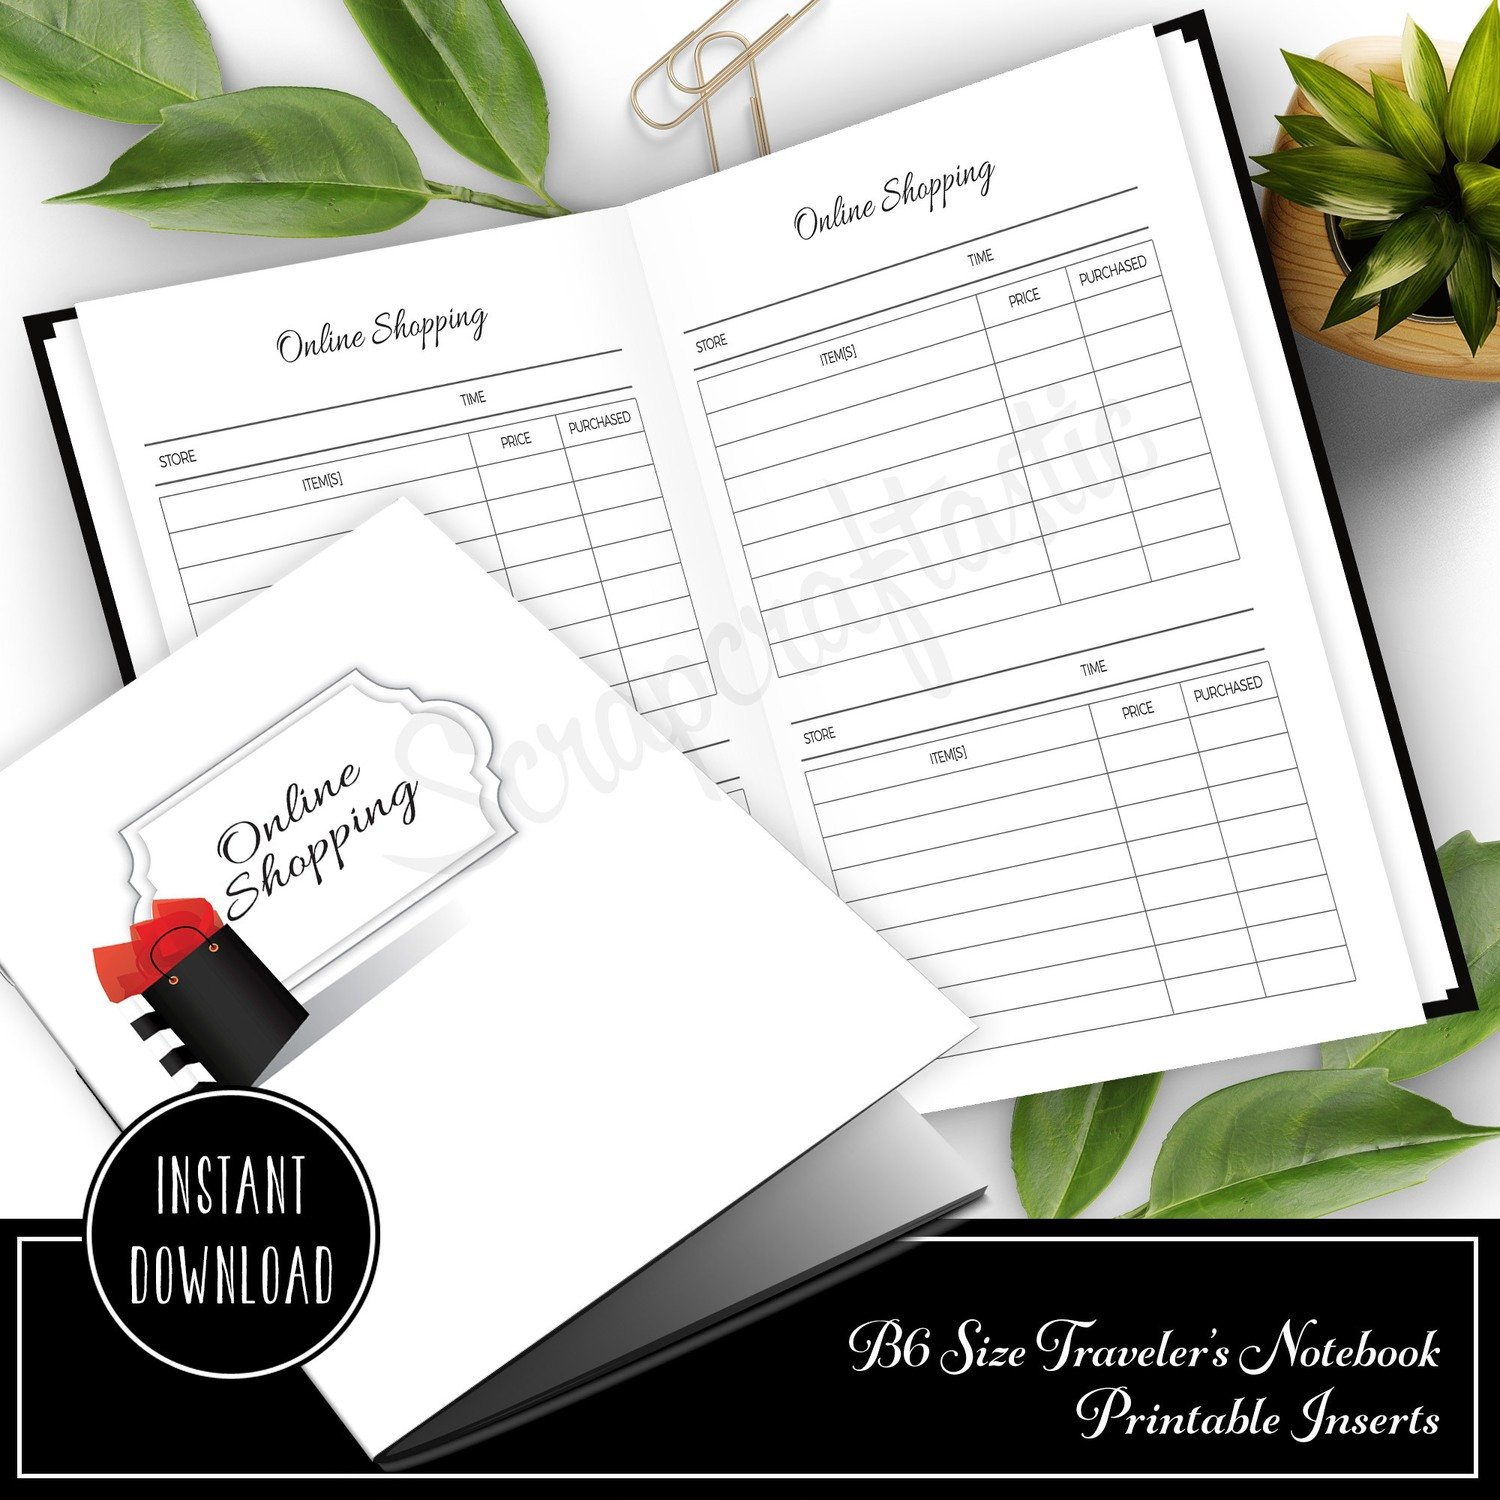 Online Shopping B6 Size Traveler's Notebook Printable Planner Inserts